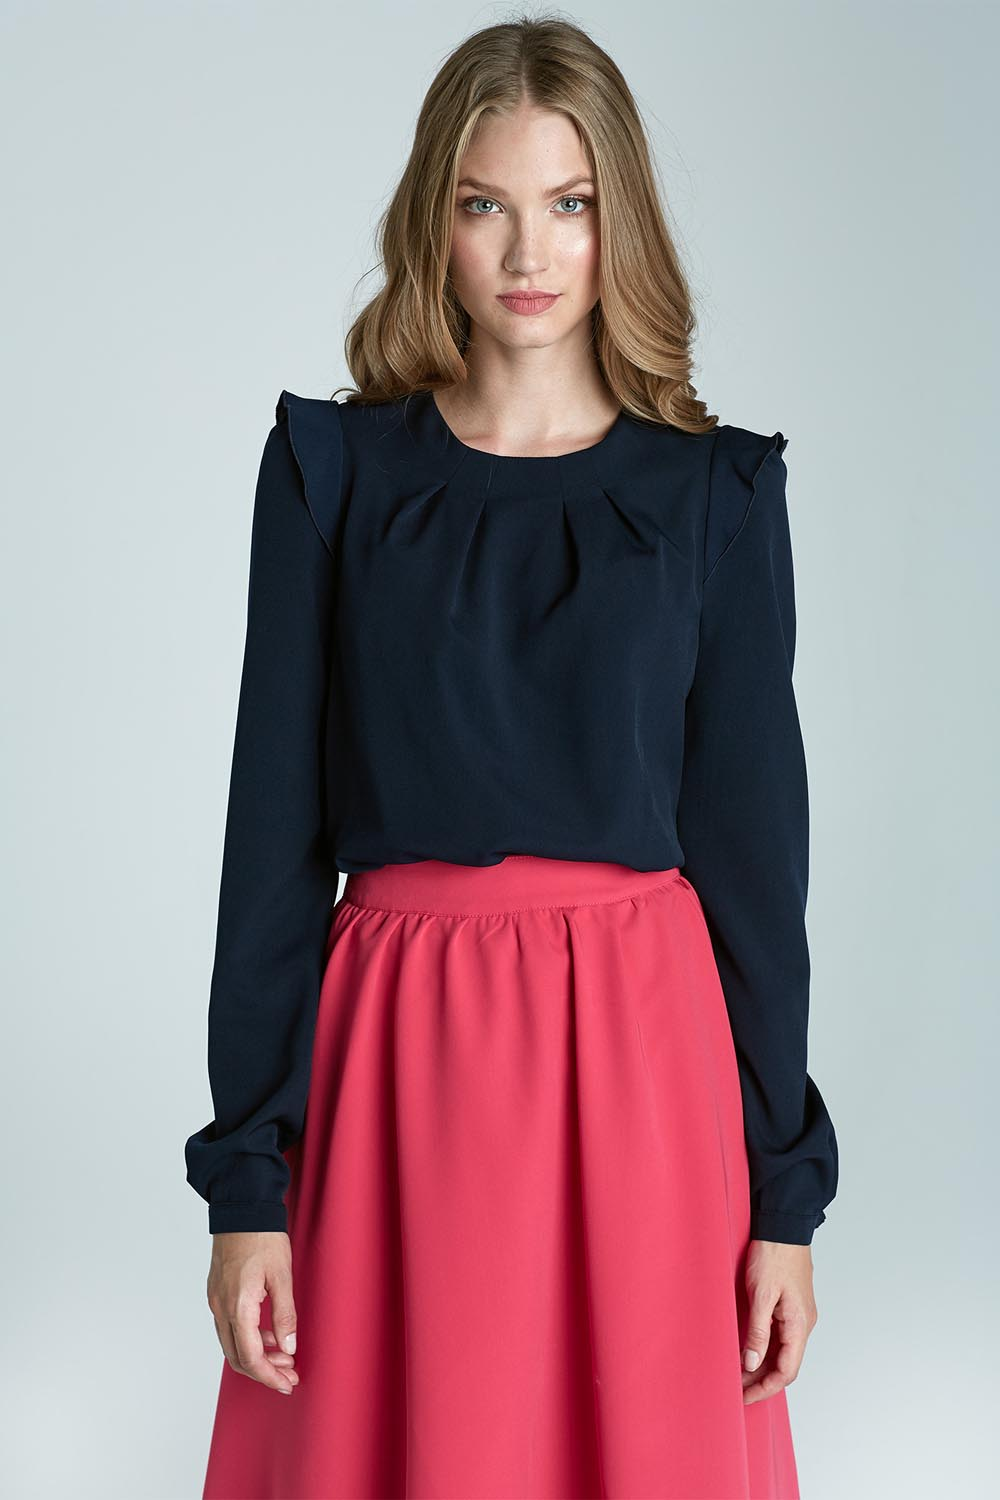 Long Sleeve Blouse With Ruffles 8